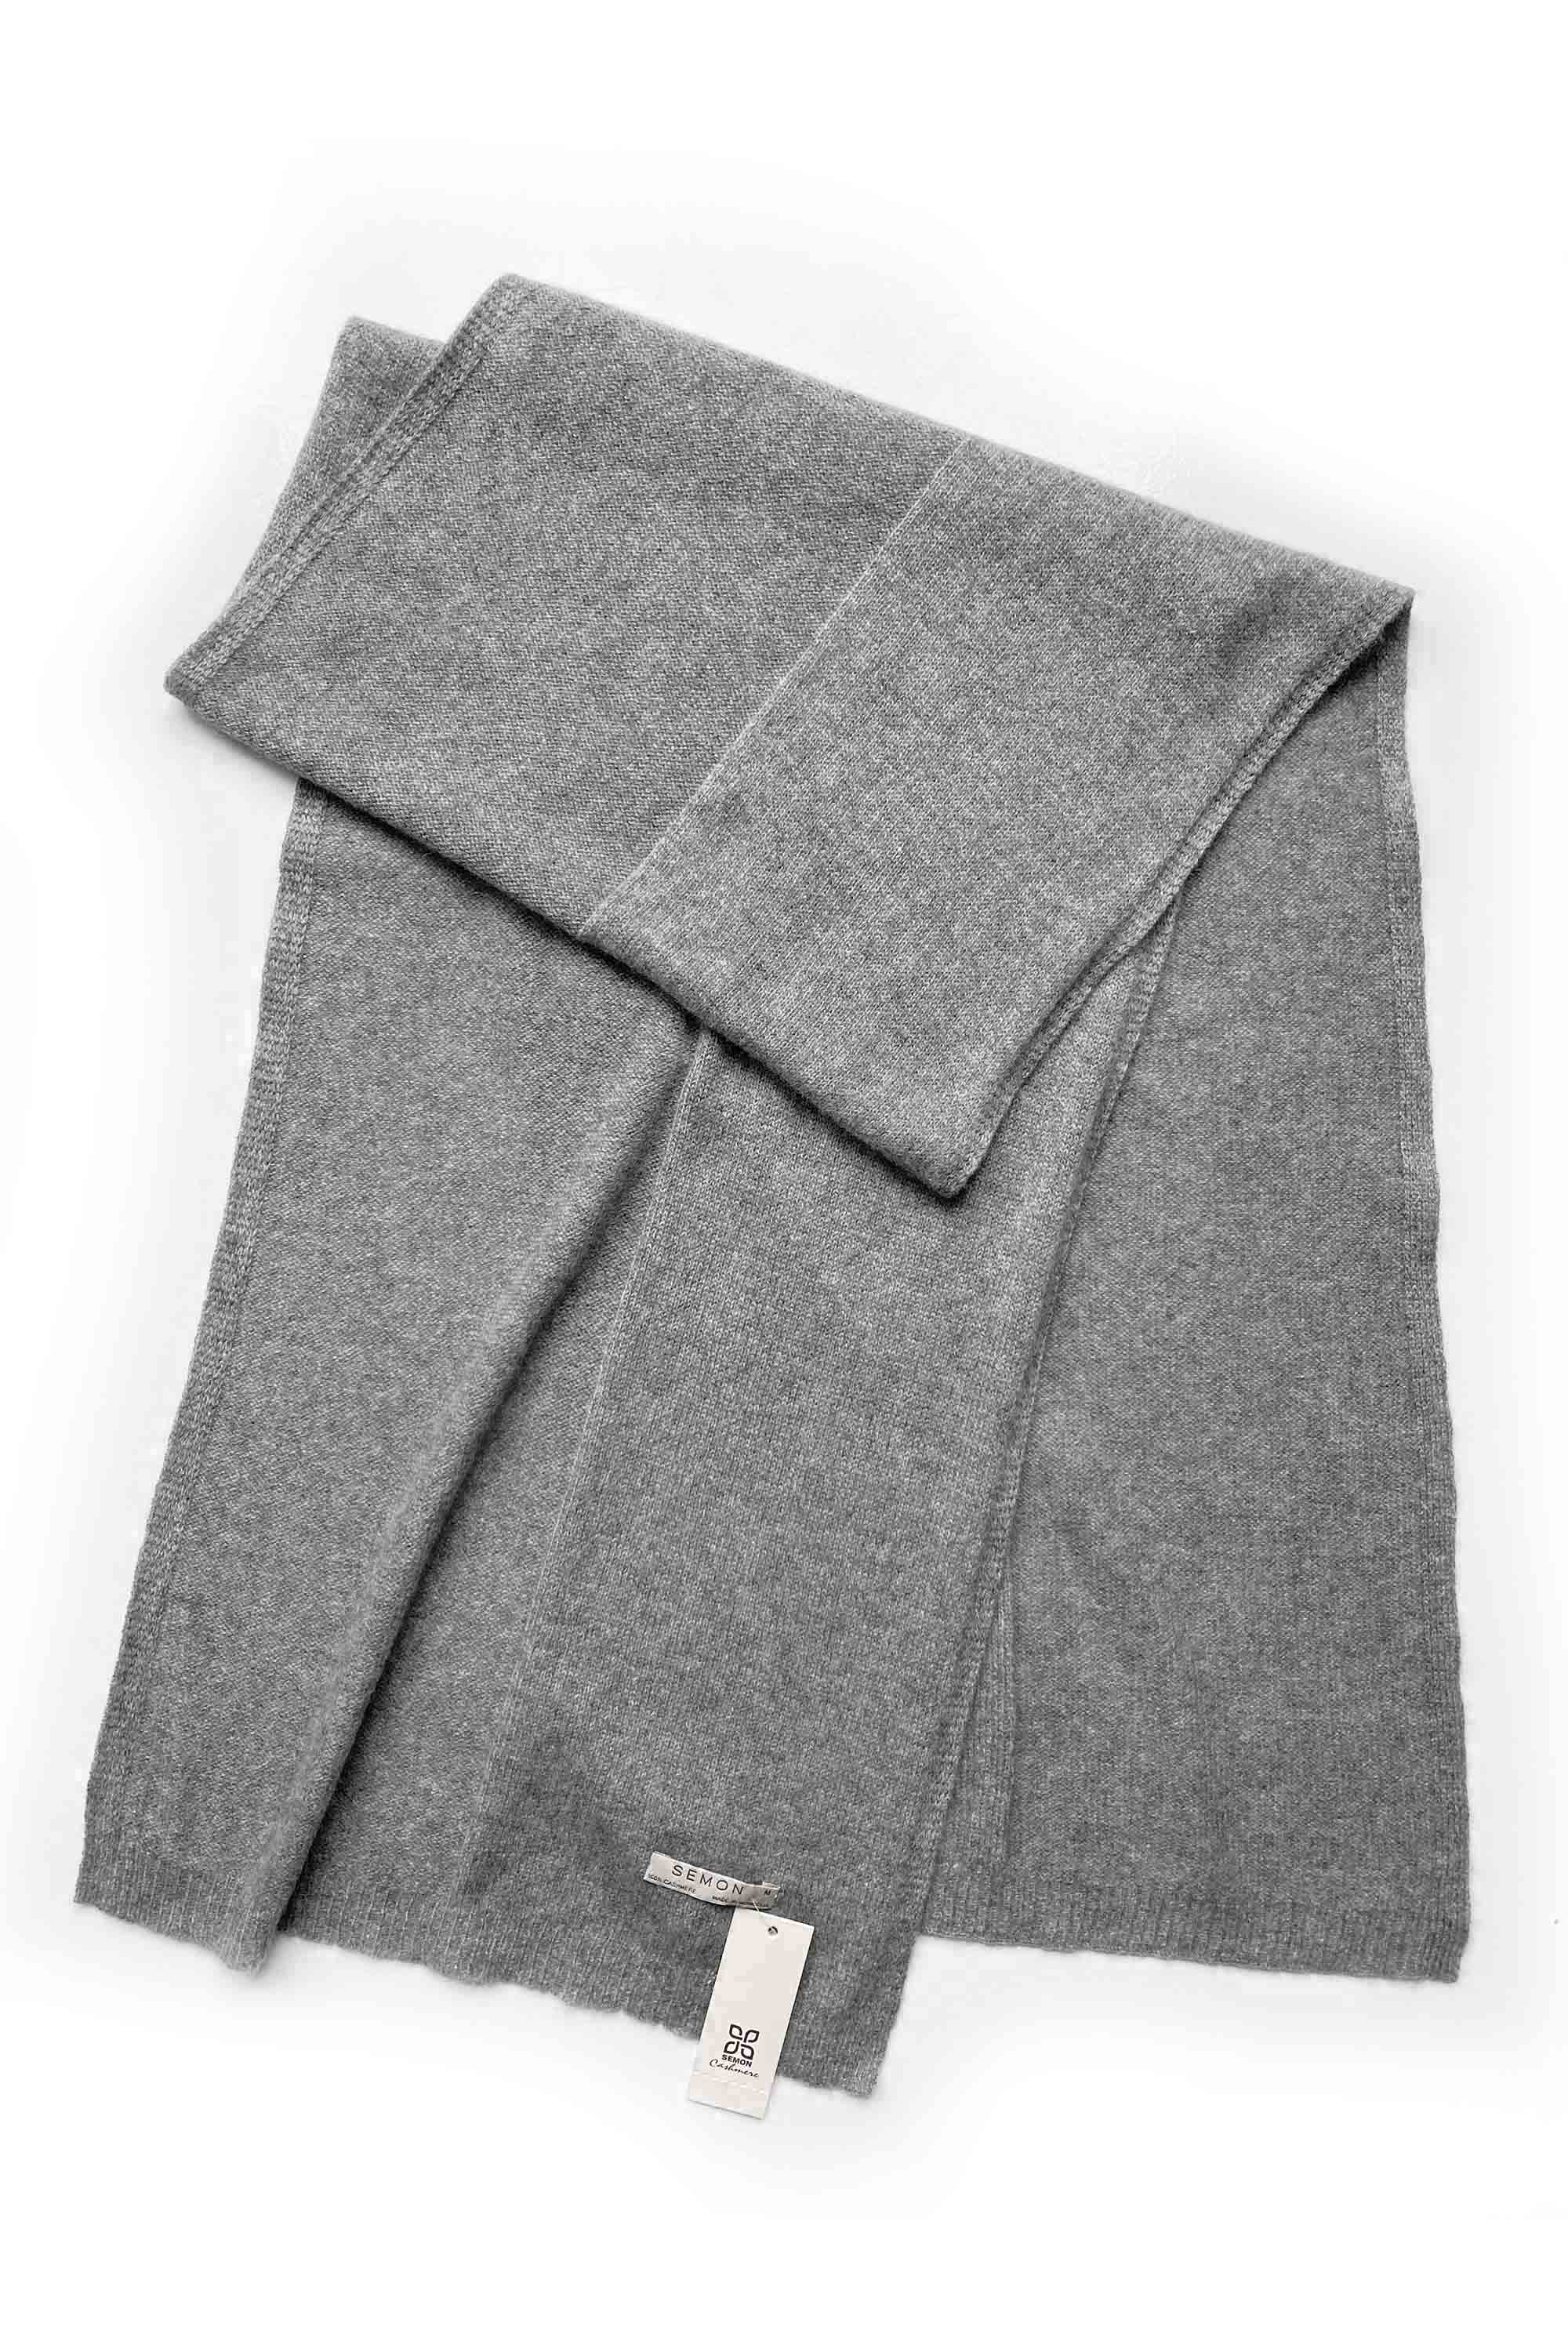 100% pure cashmere Medium sized plain lightweight cashmere scarf in mid grey | SEMON Cashmere